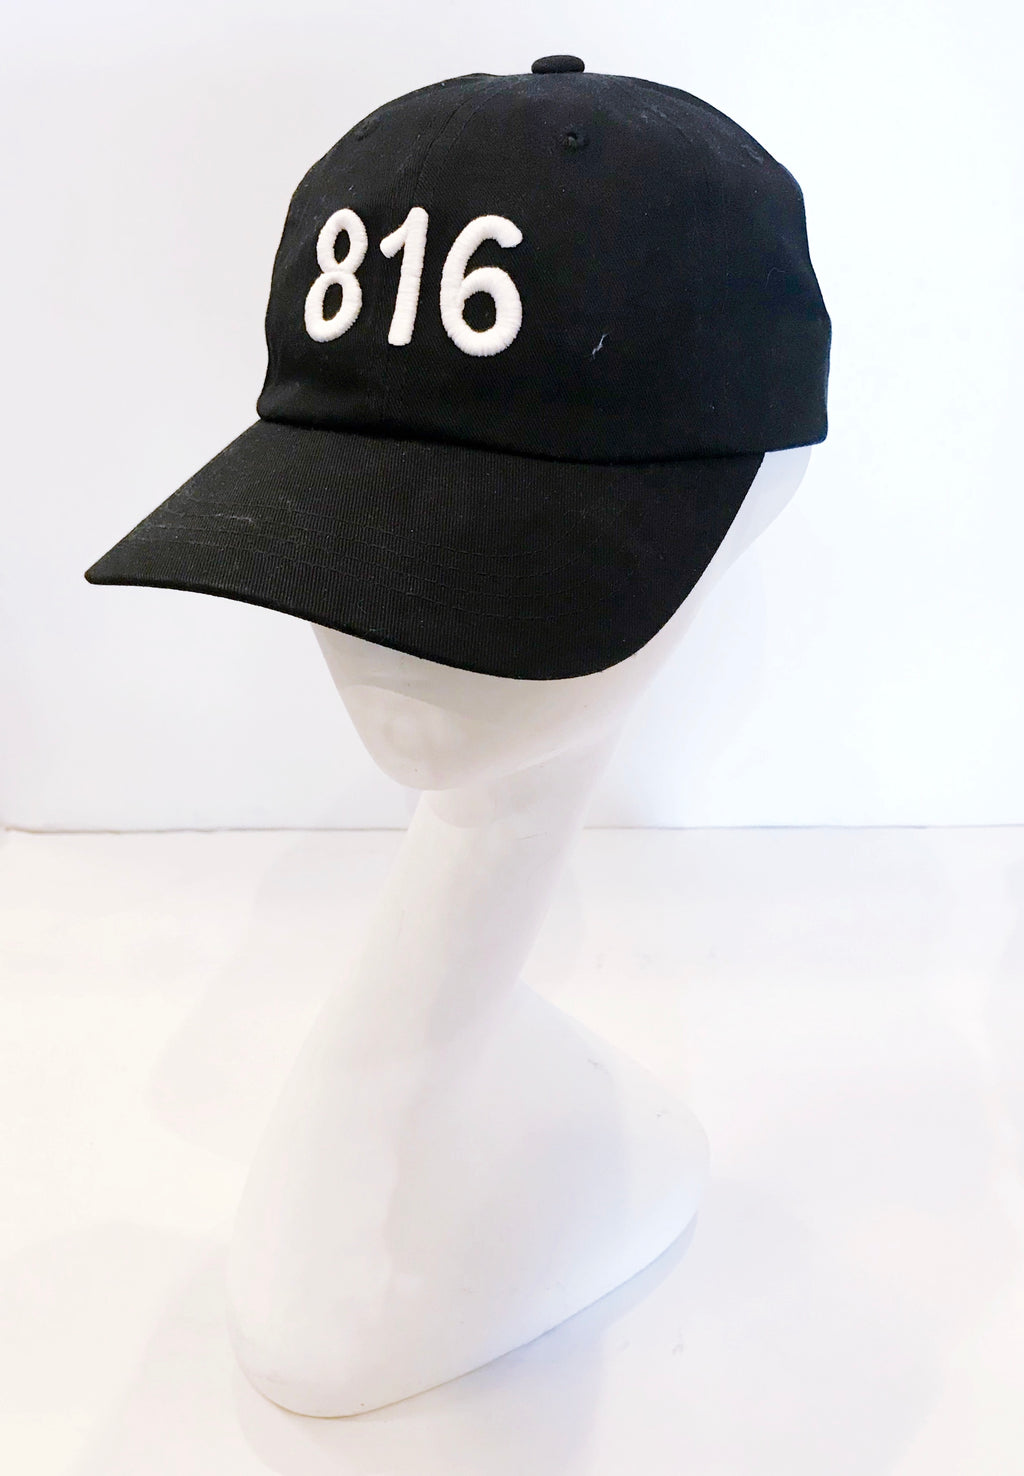 816 KCMO AREA CODE HAT